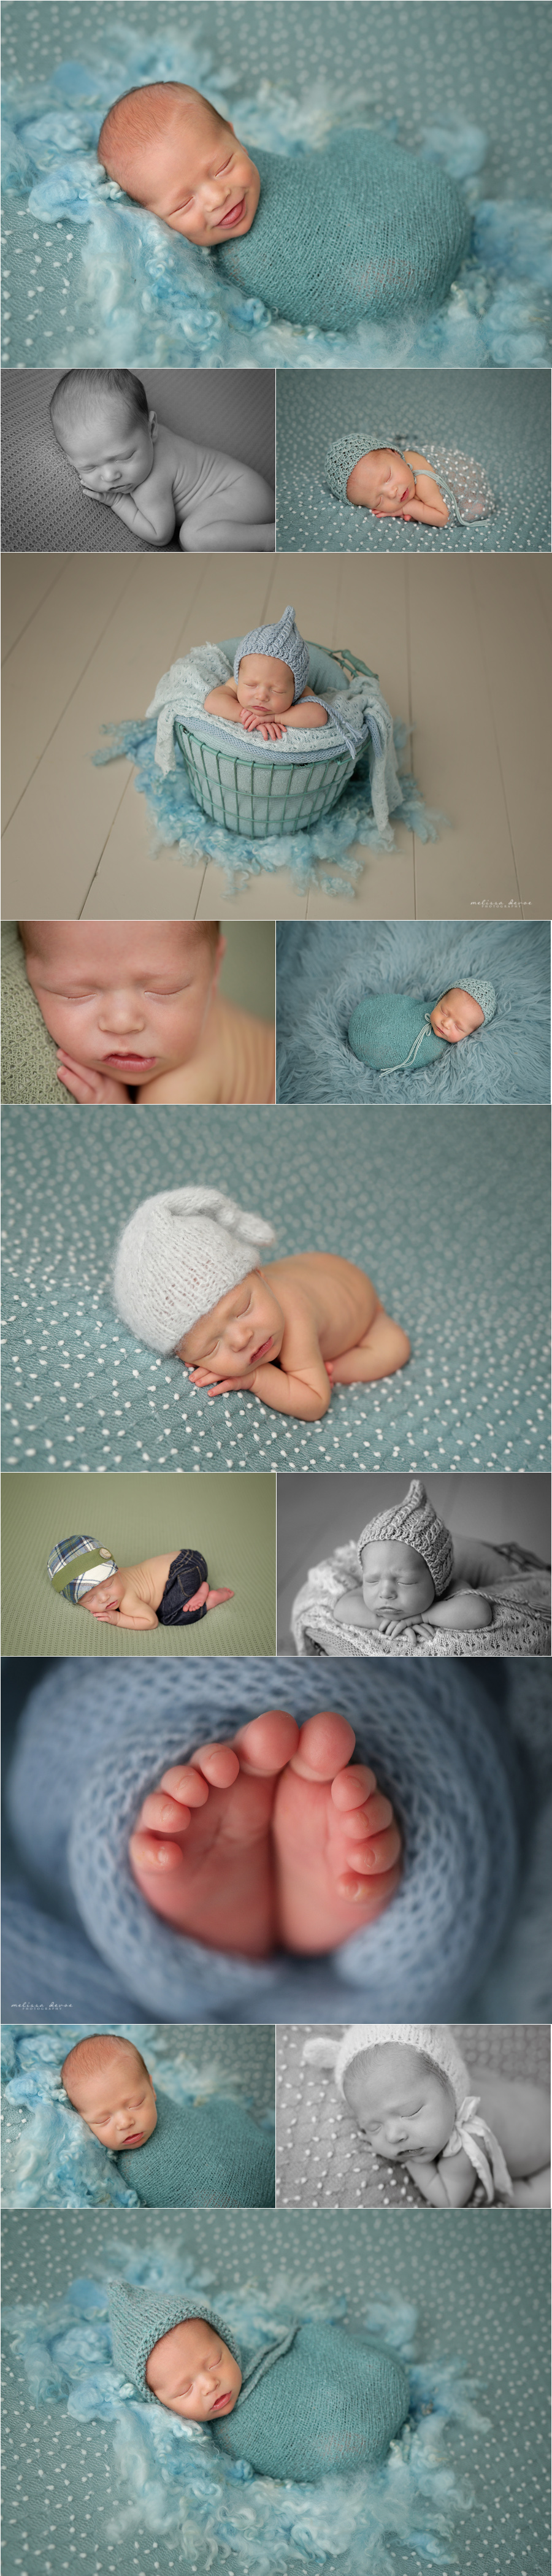 Melissa DeVoe Raleigh Durham Newborn Baby Photographer